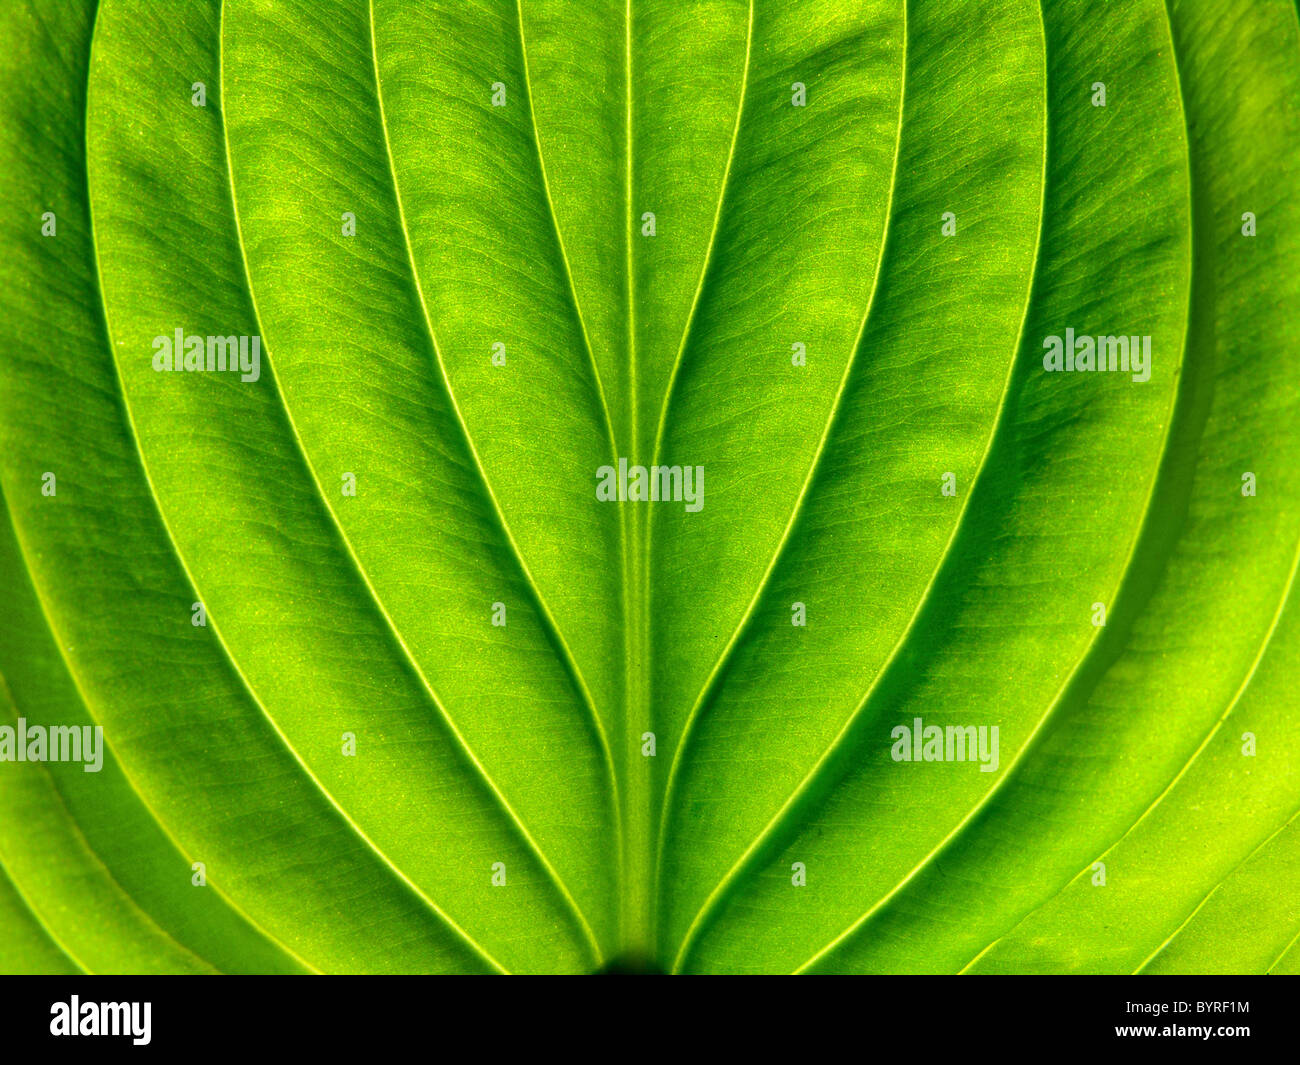 Conceptual image of a leaf - Stock Image